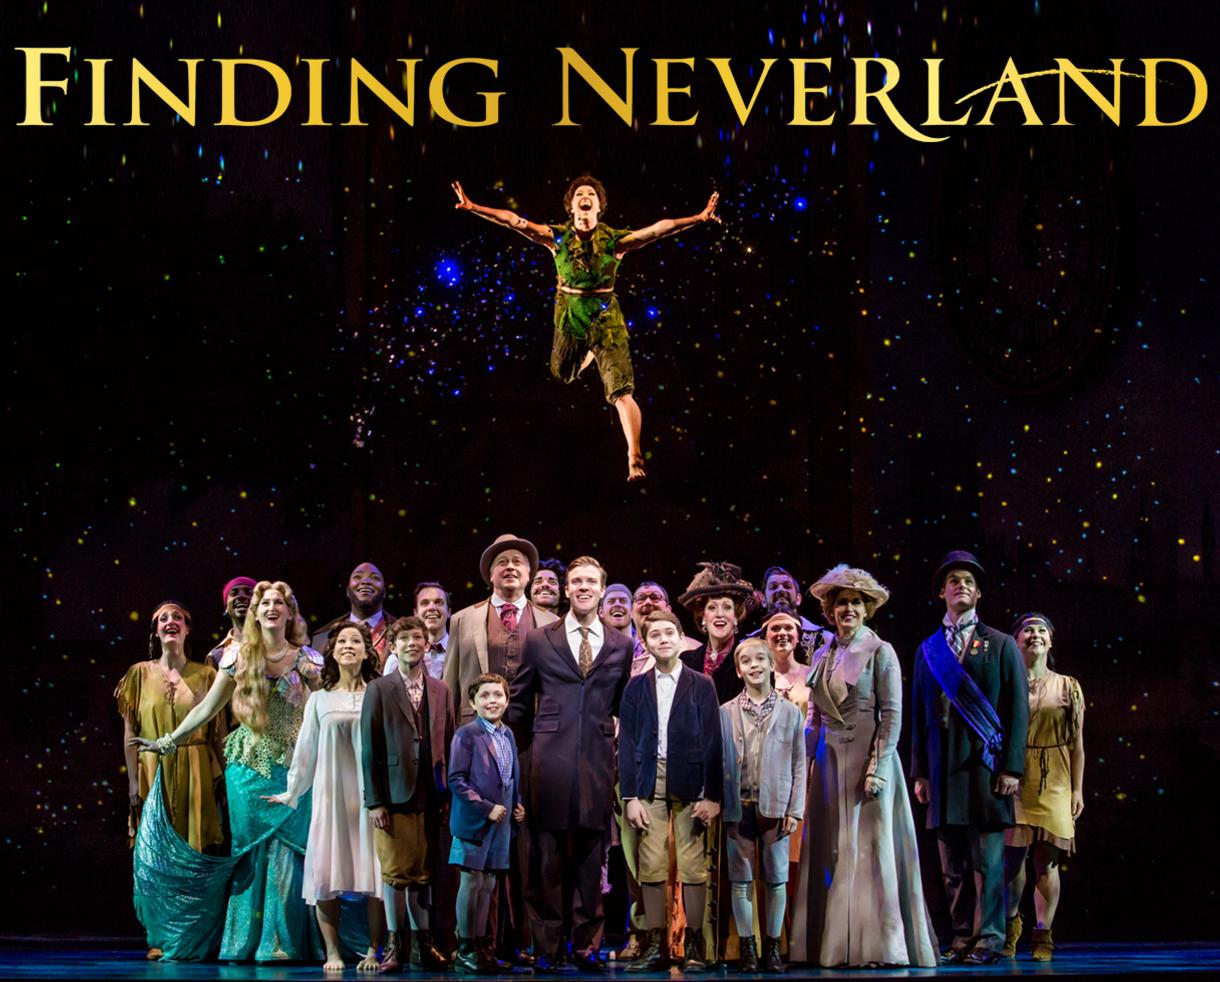 40% Off FINDING NEVERLAND at The Hippodrome in Baltimore - June 30th & July 2nd